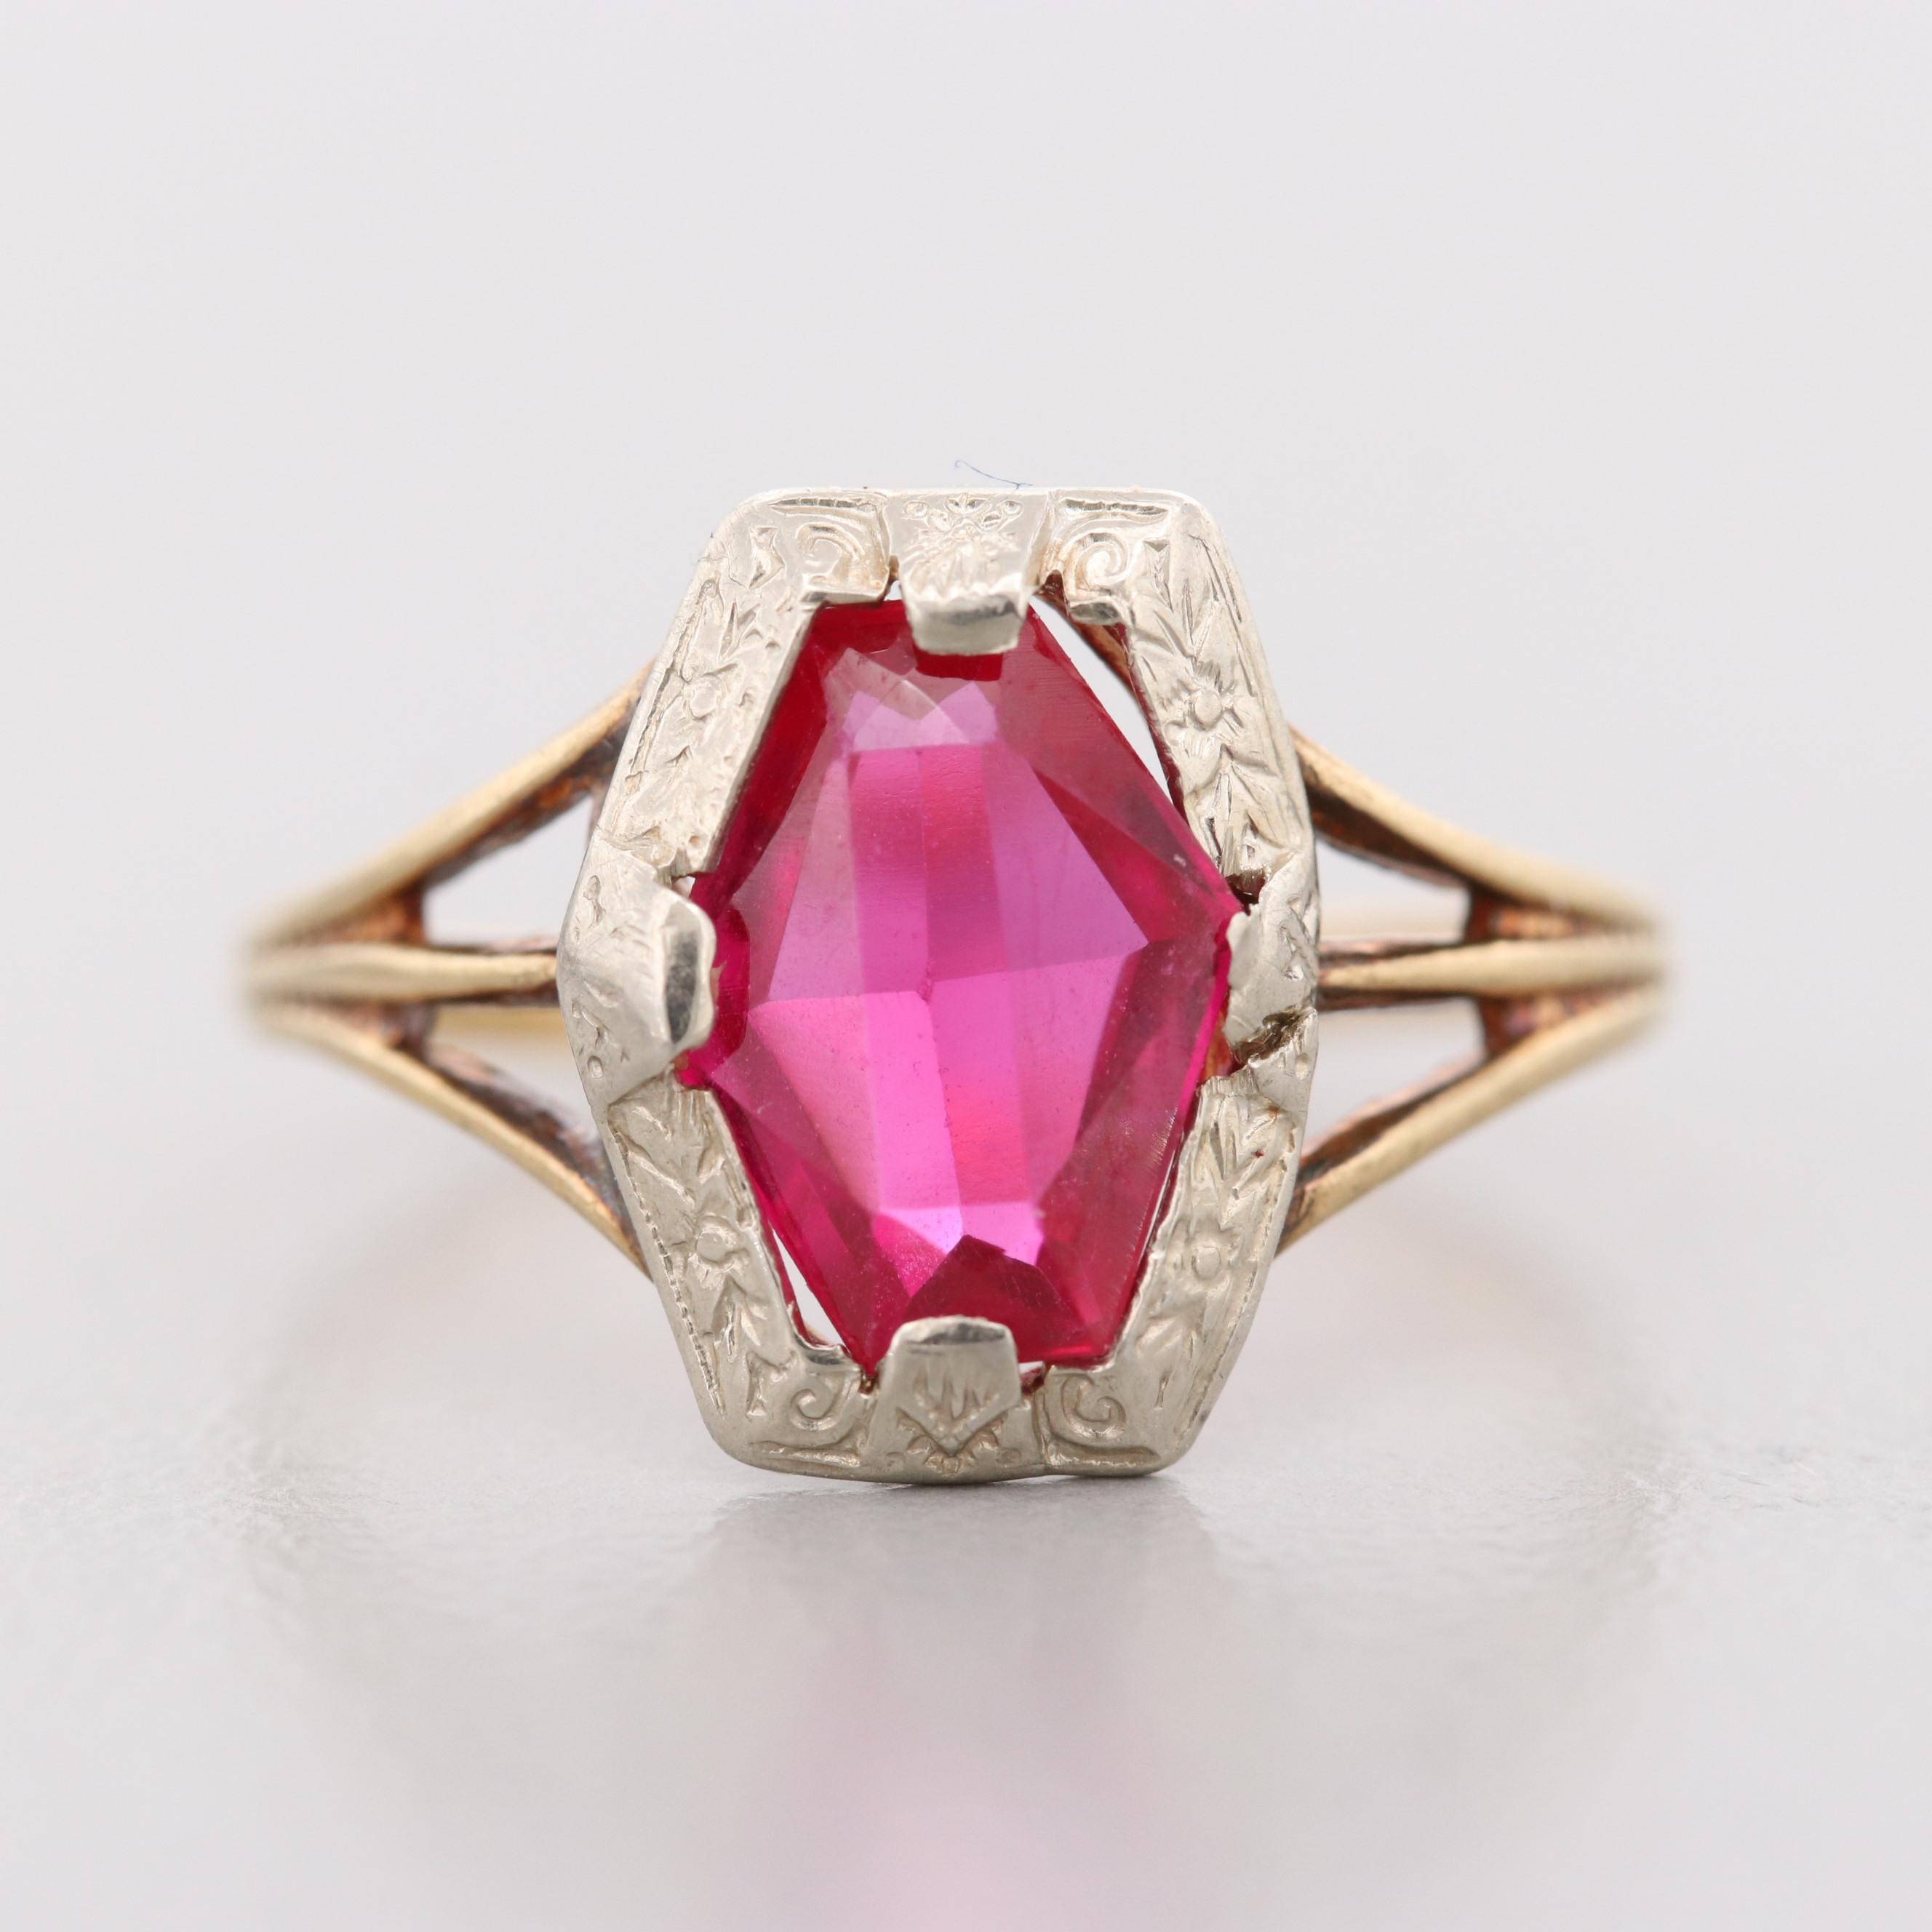 Ostby & Barton Art Deco 10K Yellow and White Gold Synthetic Ruby Ring